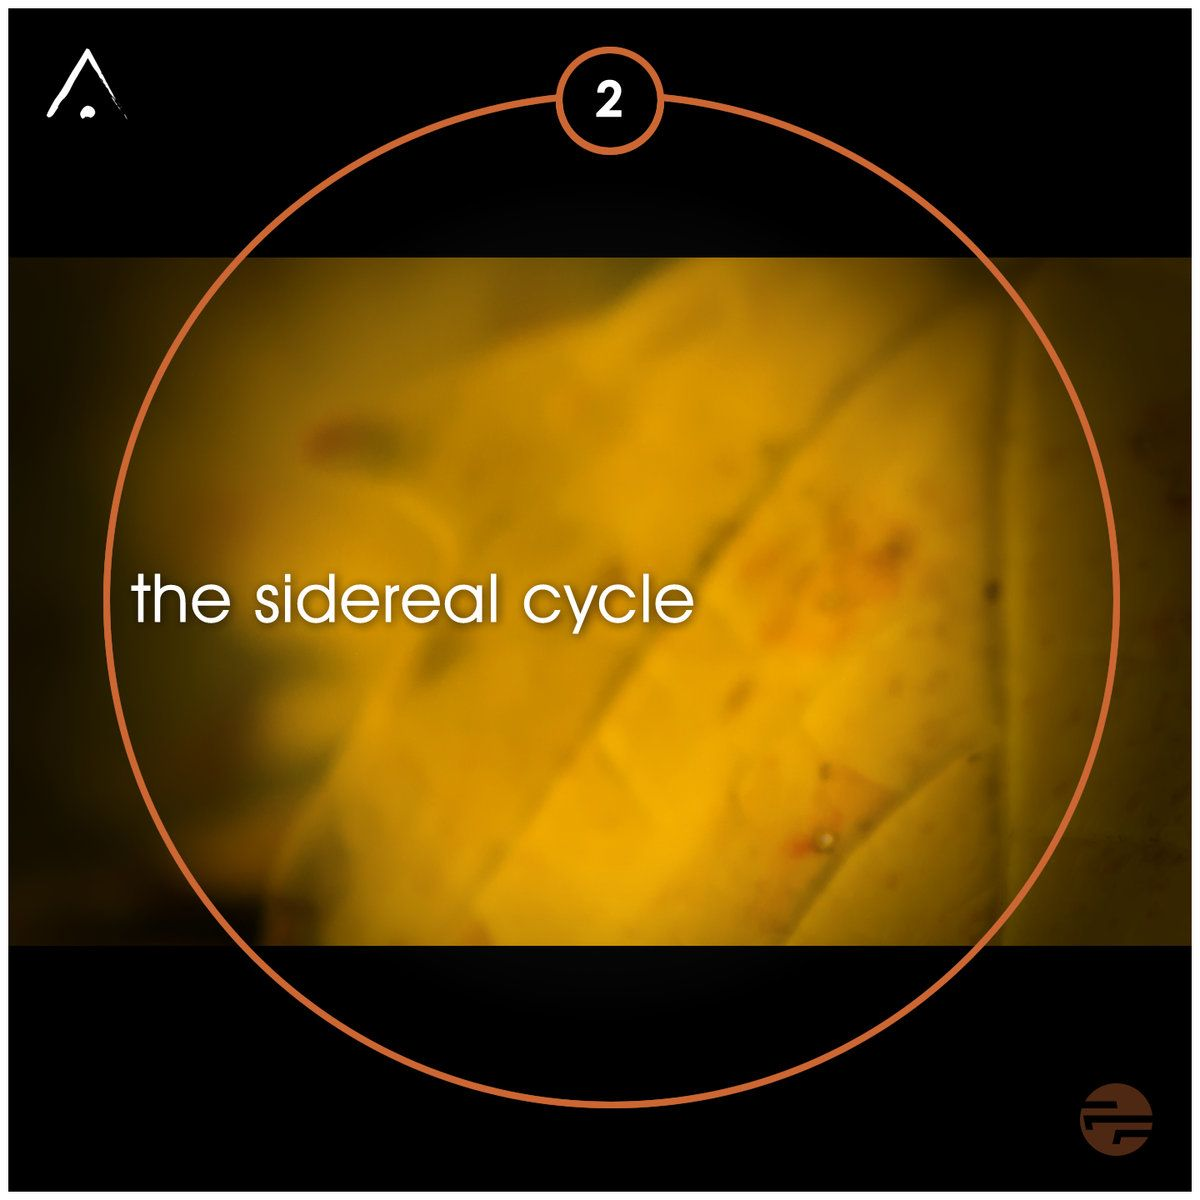 The Sidereal Cycle 2 | Free Floating Music